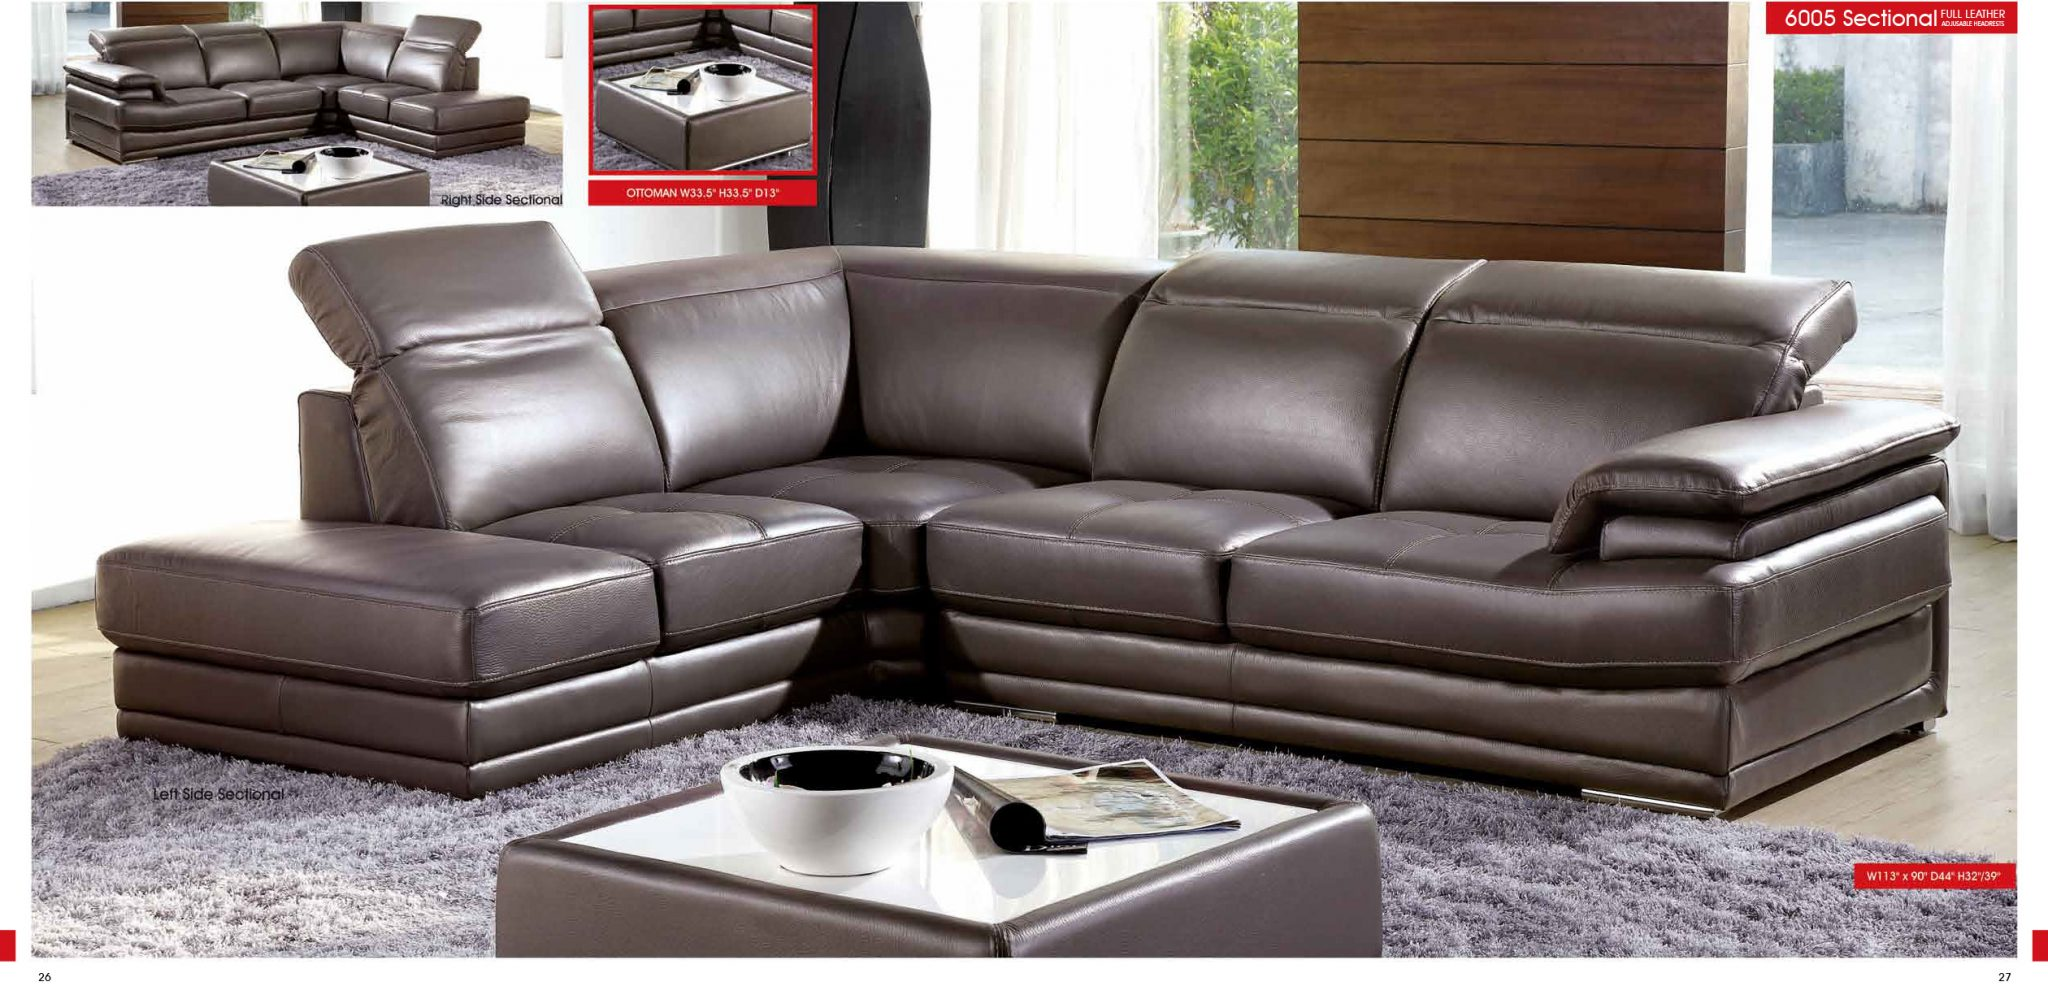 sofa gray color leather consumer reports esf modern grey genuine italian sectional 6005